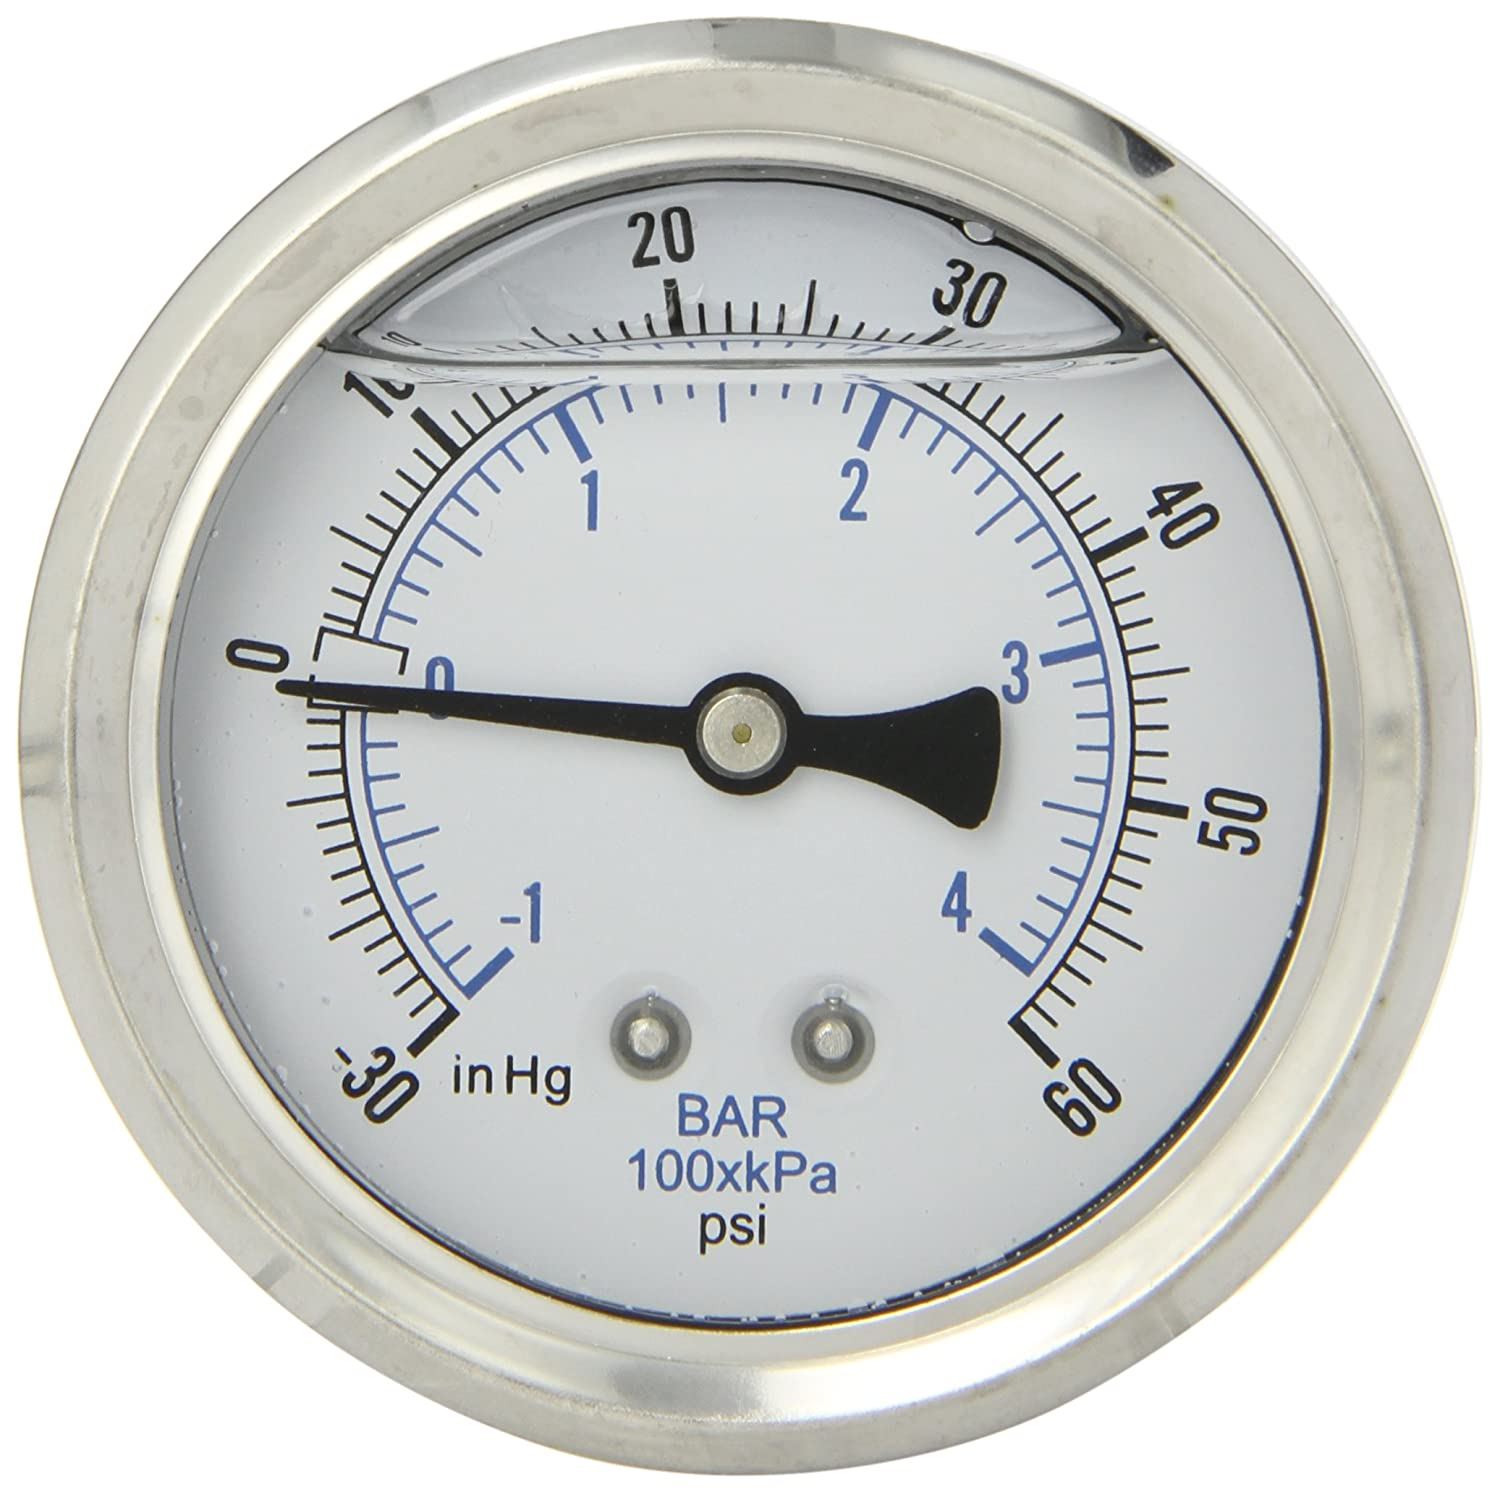 PIC Gauge PRO 202L 254CD Glycerin Filled Industrial Center Back Mount Pressure Gauge with Stainless Steel Case Brass Internals Plastic Lens 2 1 2 Dial Size 1 4 Male NPT 30 0 60 psi